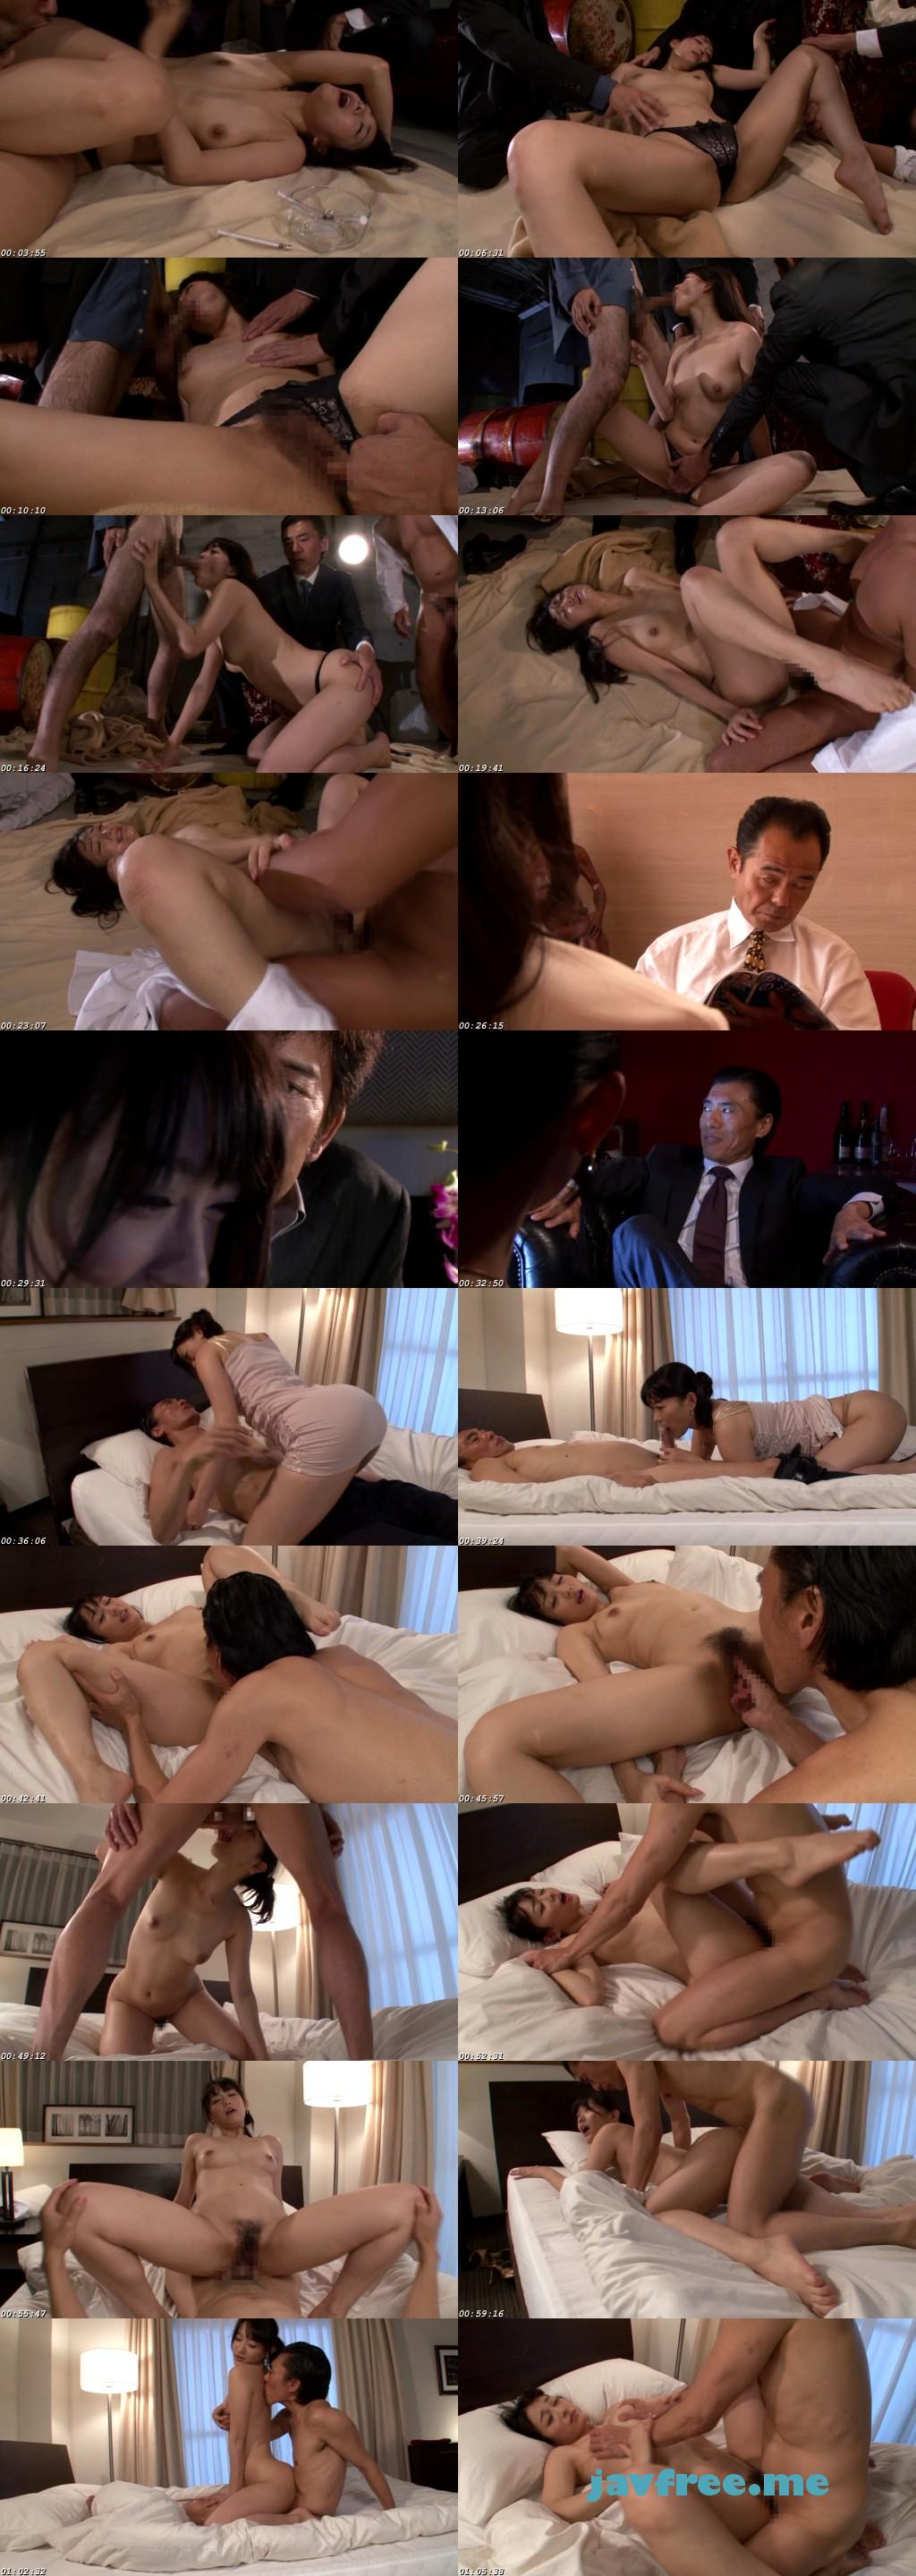 [HD][SSPD-096] 女狐2 西野翔 - image SSPD-096-2 on https://javfree.me